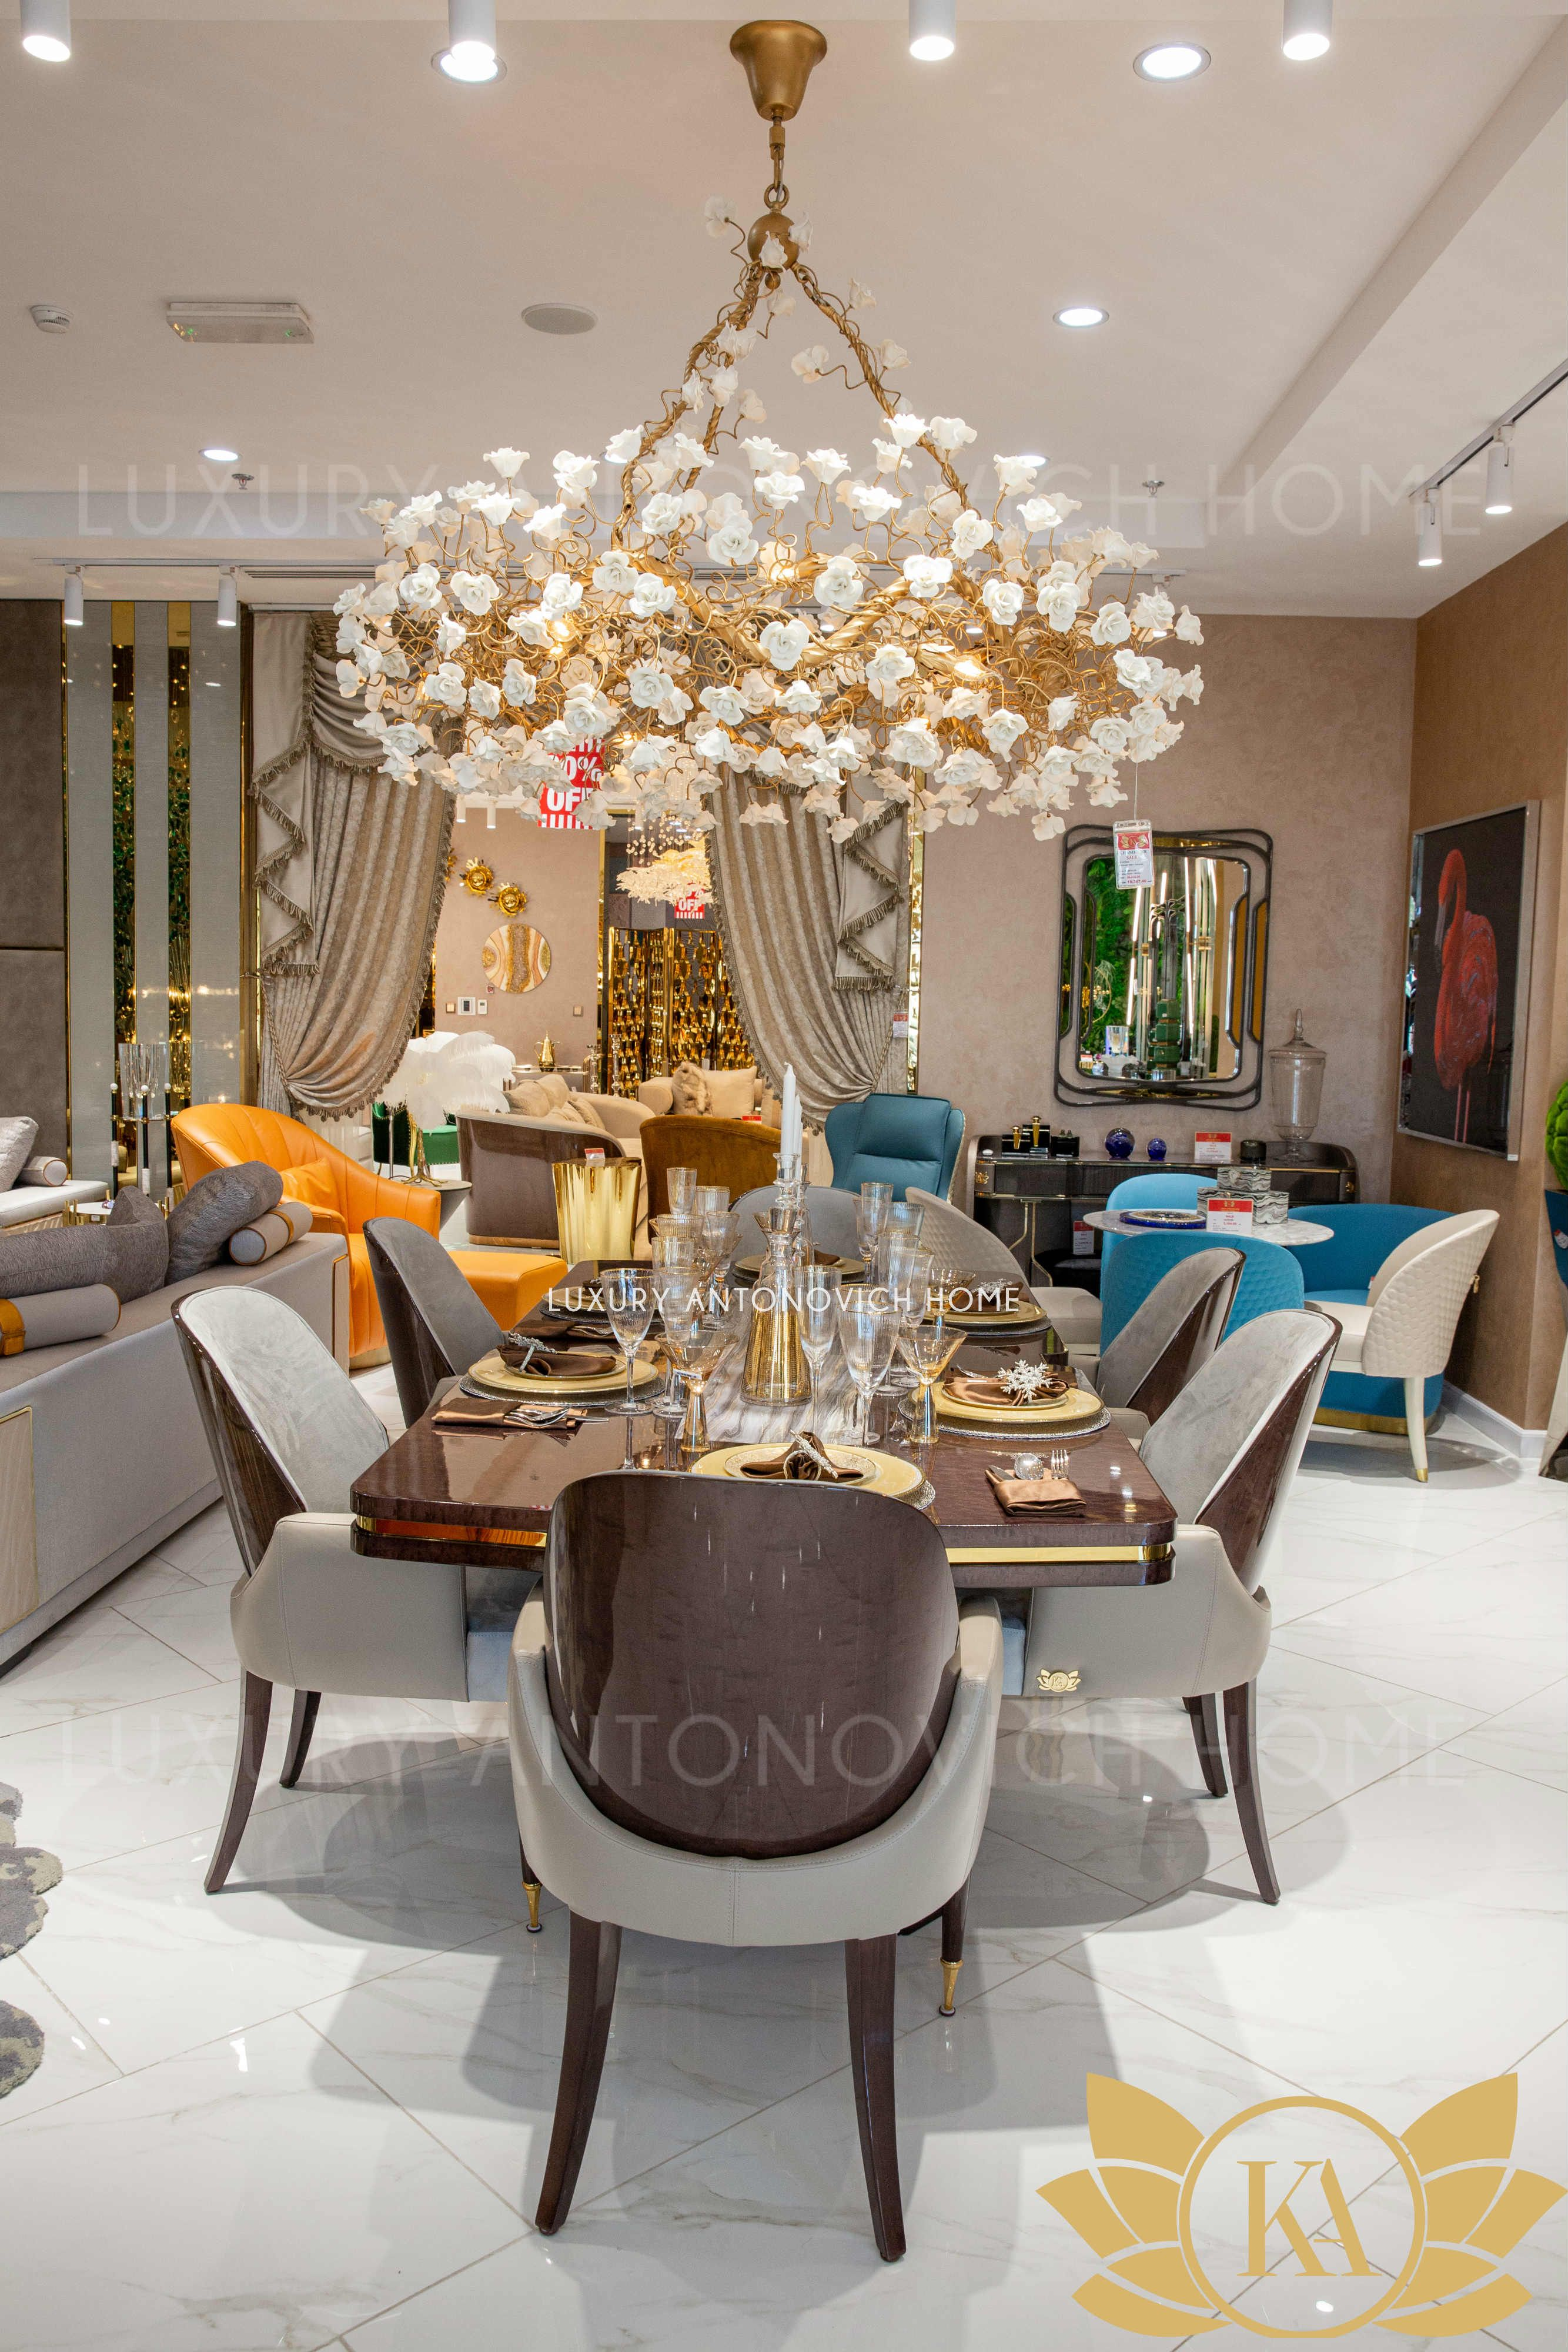 Exclusive Designer Furniture Showroom Luxury Antonovich Home Is A True Treasury In Which Every Lover Of Exclusive Furniture Interior Design Companies Furniture